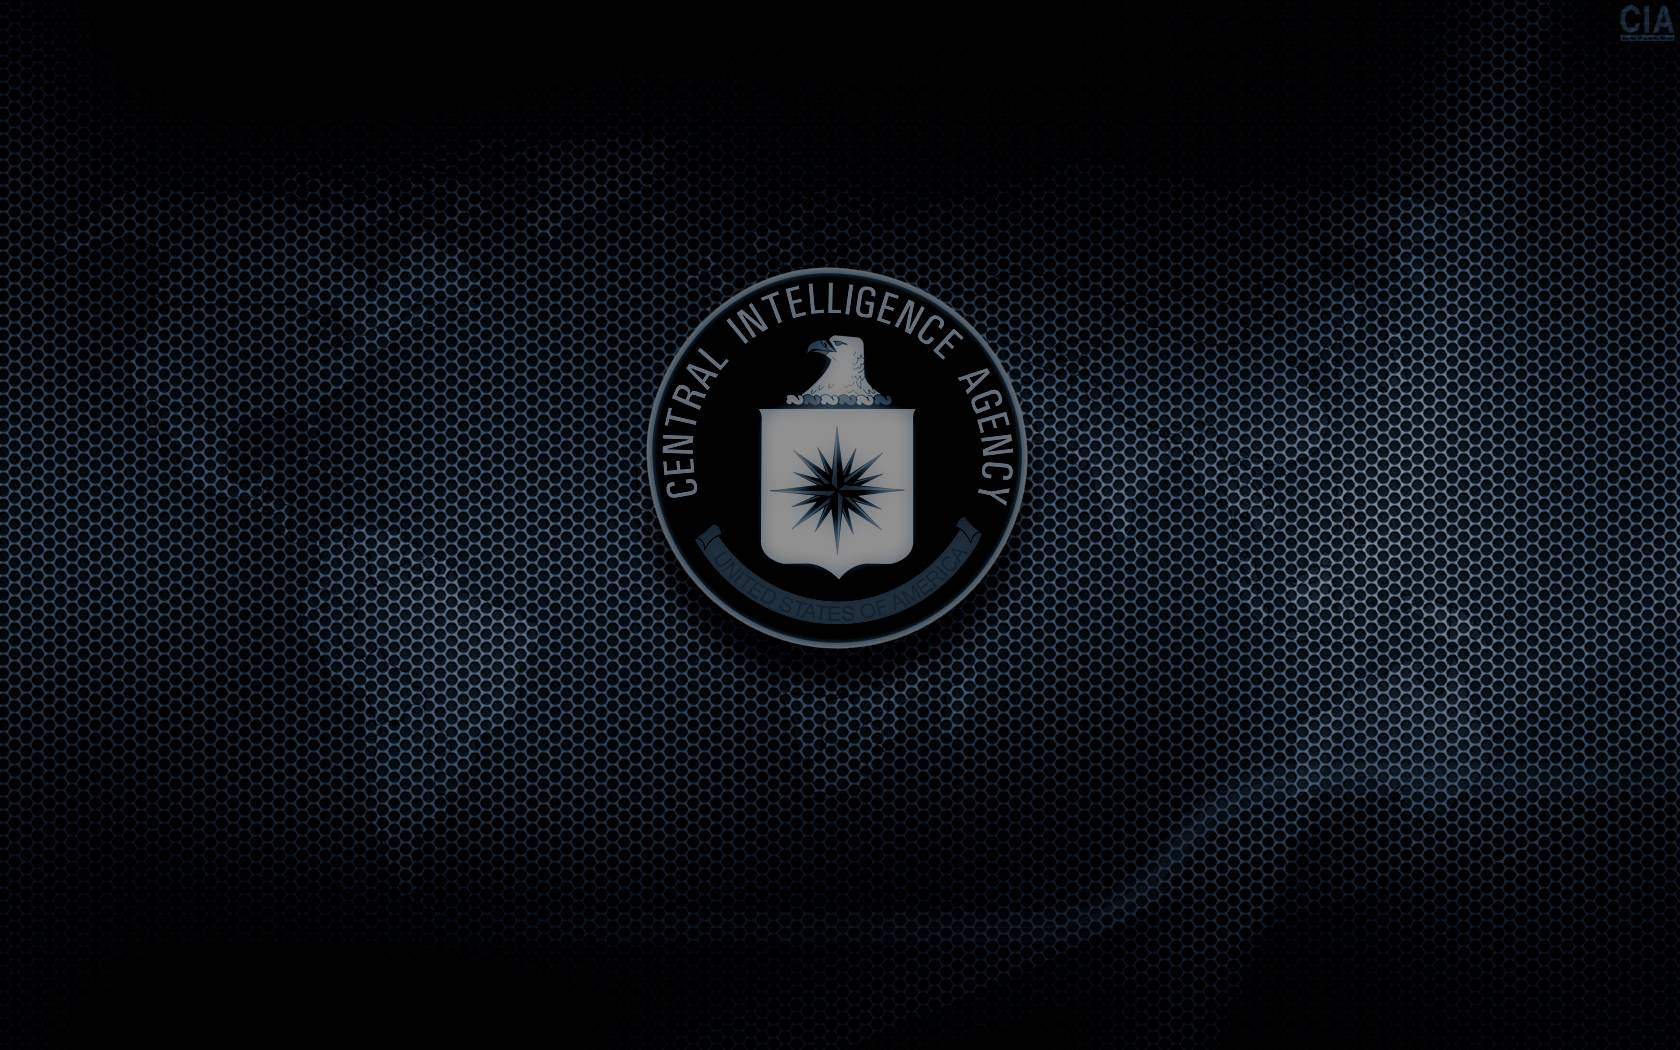 CIA Wallpapers - Wallpaper Cave